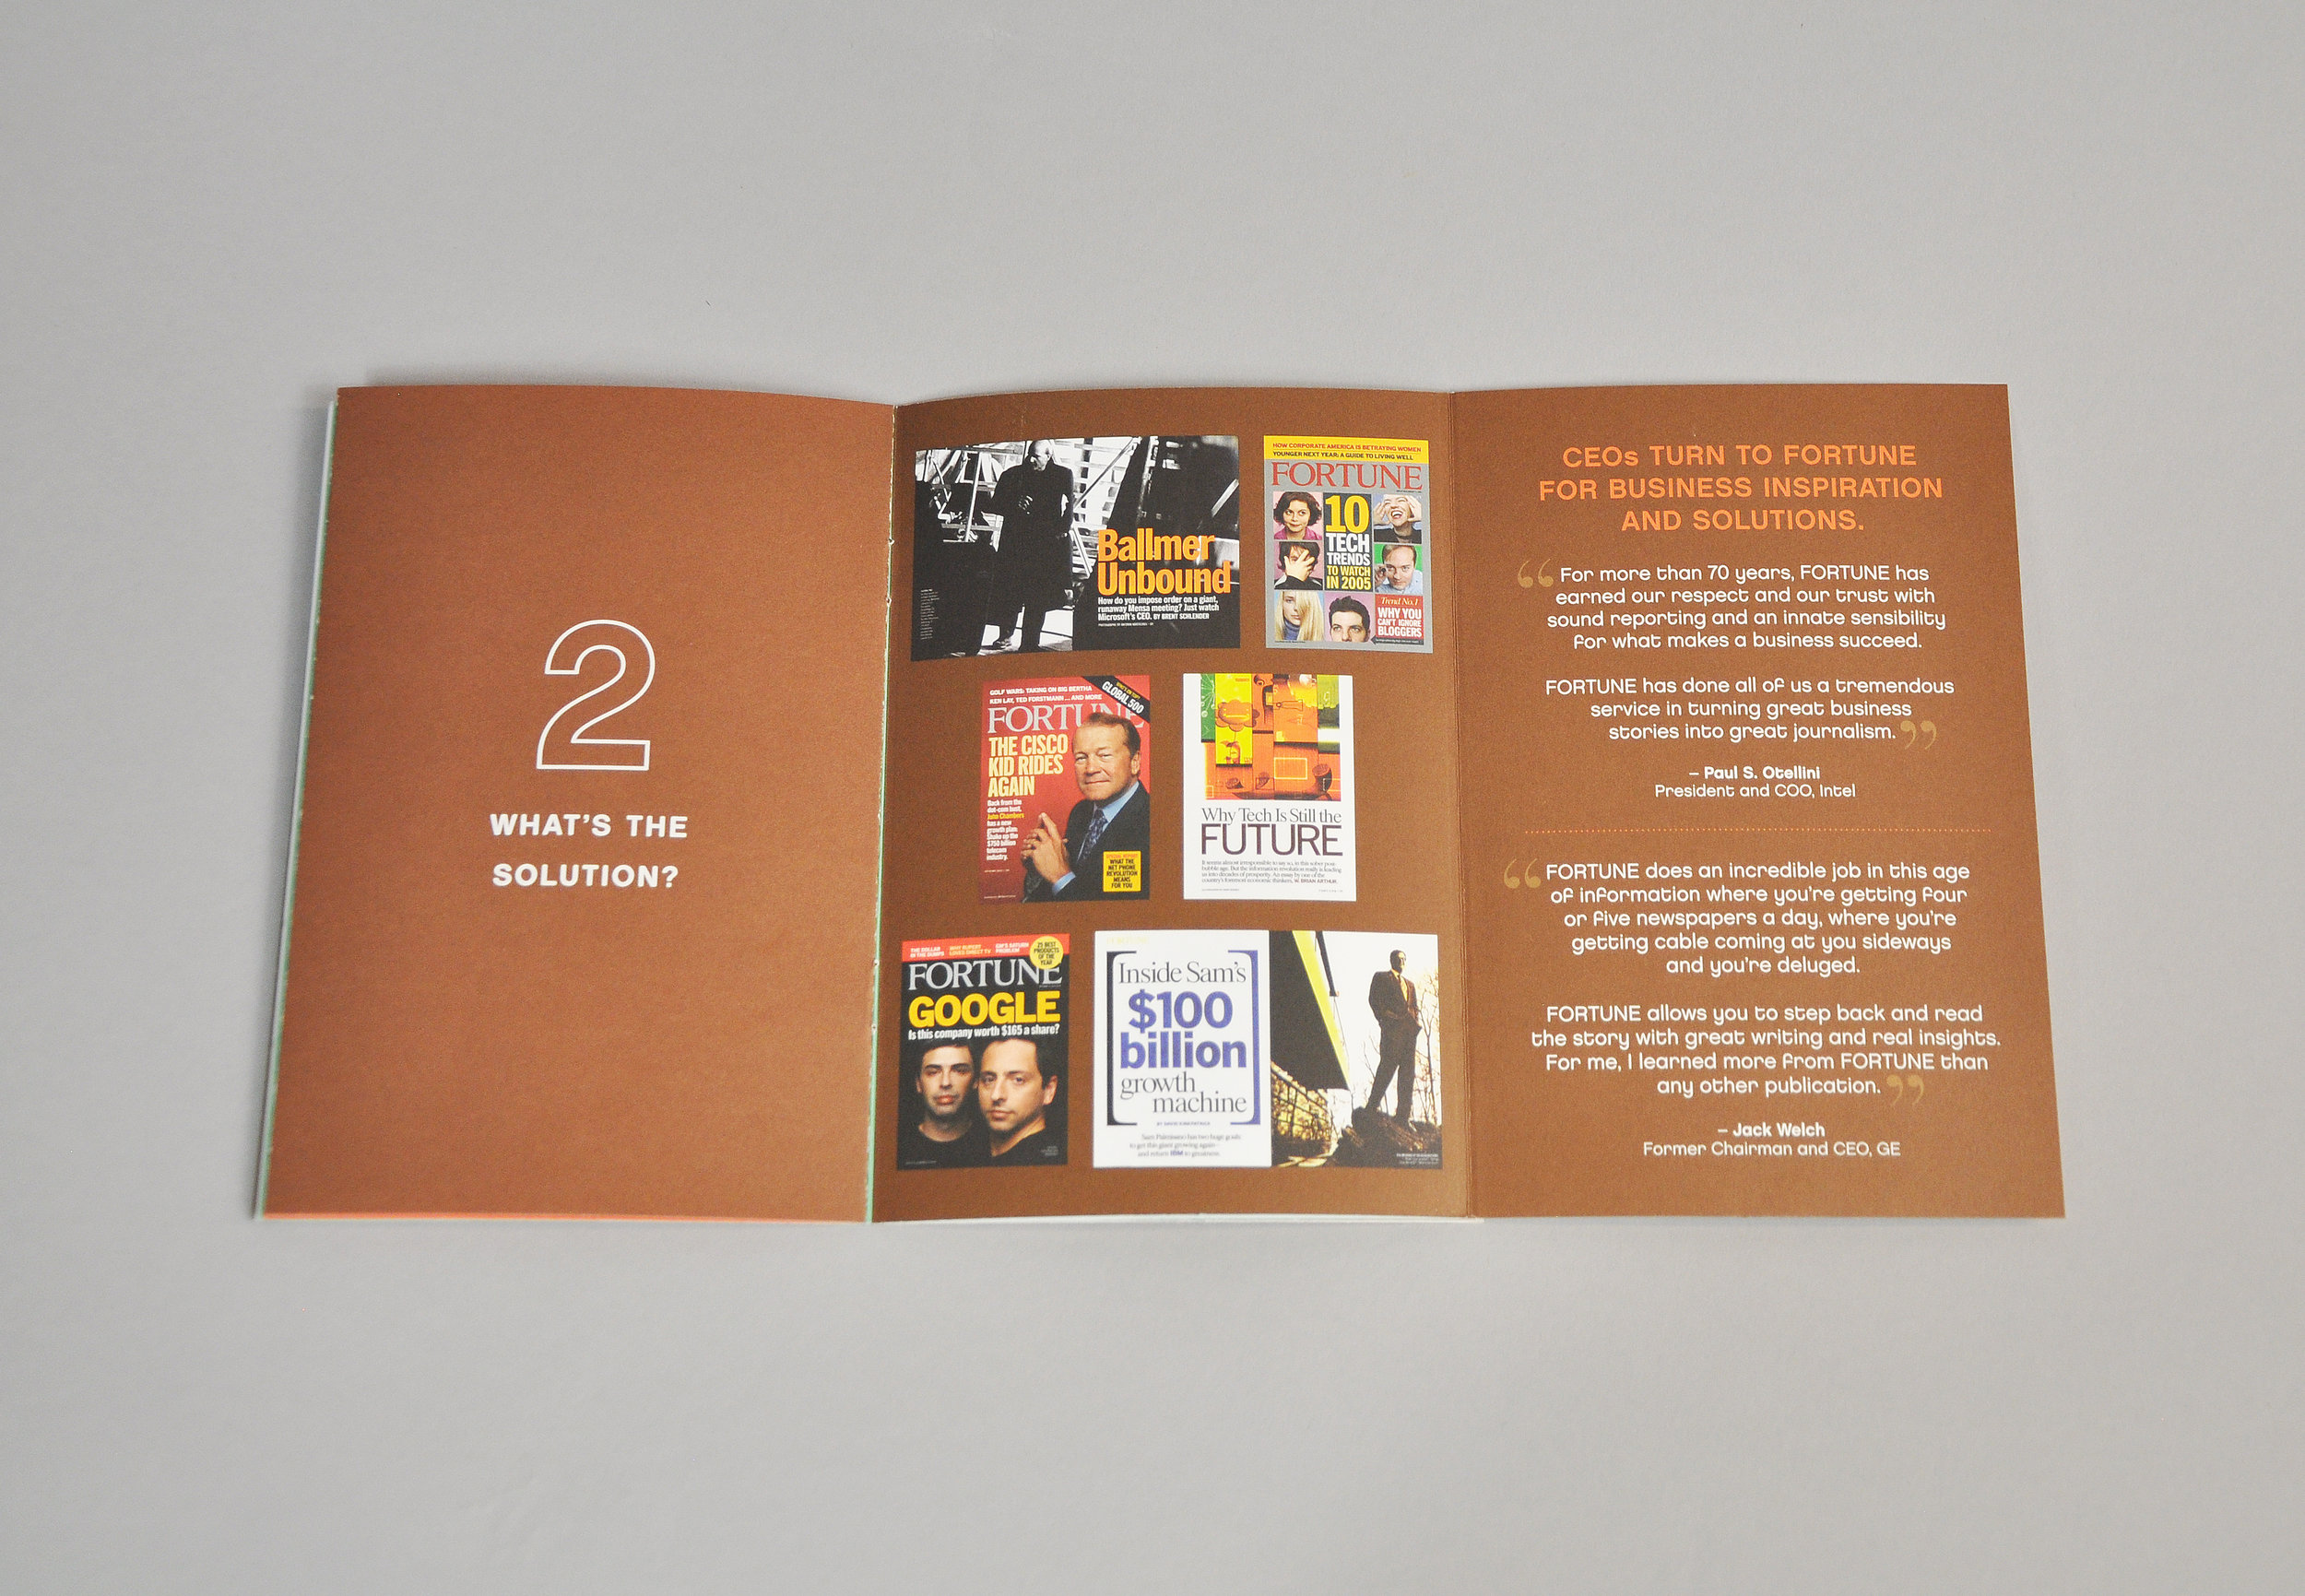 Tech Brochure interior spread with light brown background